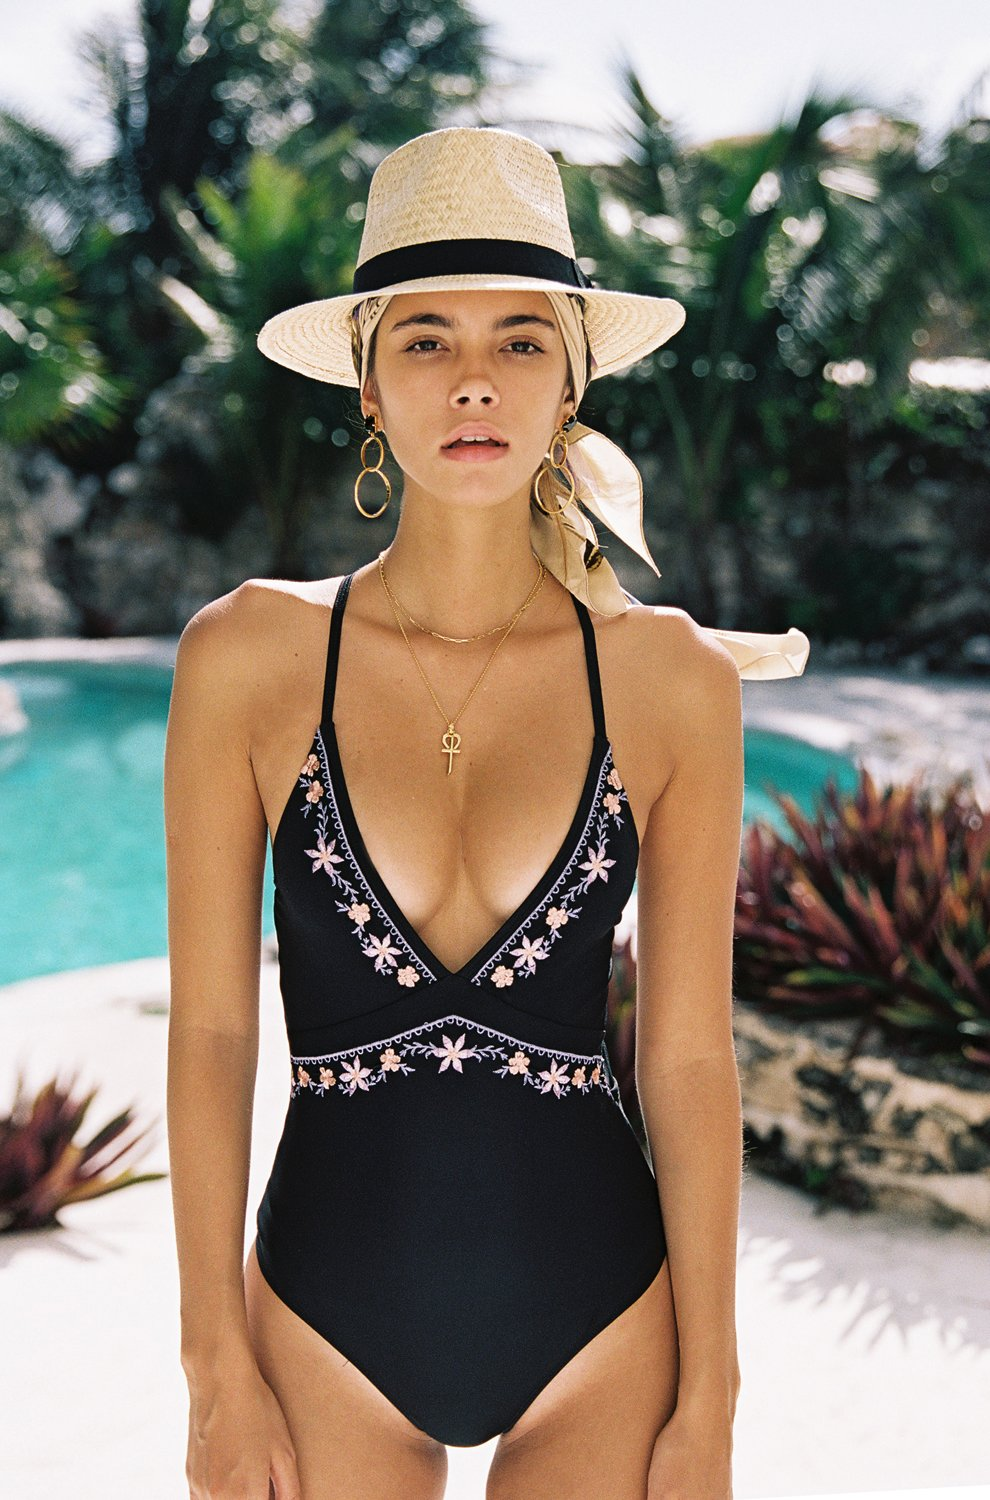 M&M 2019 New Hand Embroidery flower sexy One Piece Swimwear Women Deep V-neck Bathing Suit Beach Backless Swimsuit original free shipping bux98a bux98 to 3 50pcs lot in stock